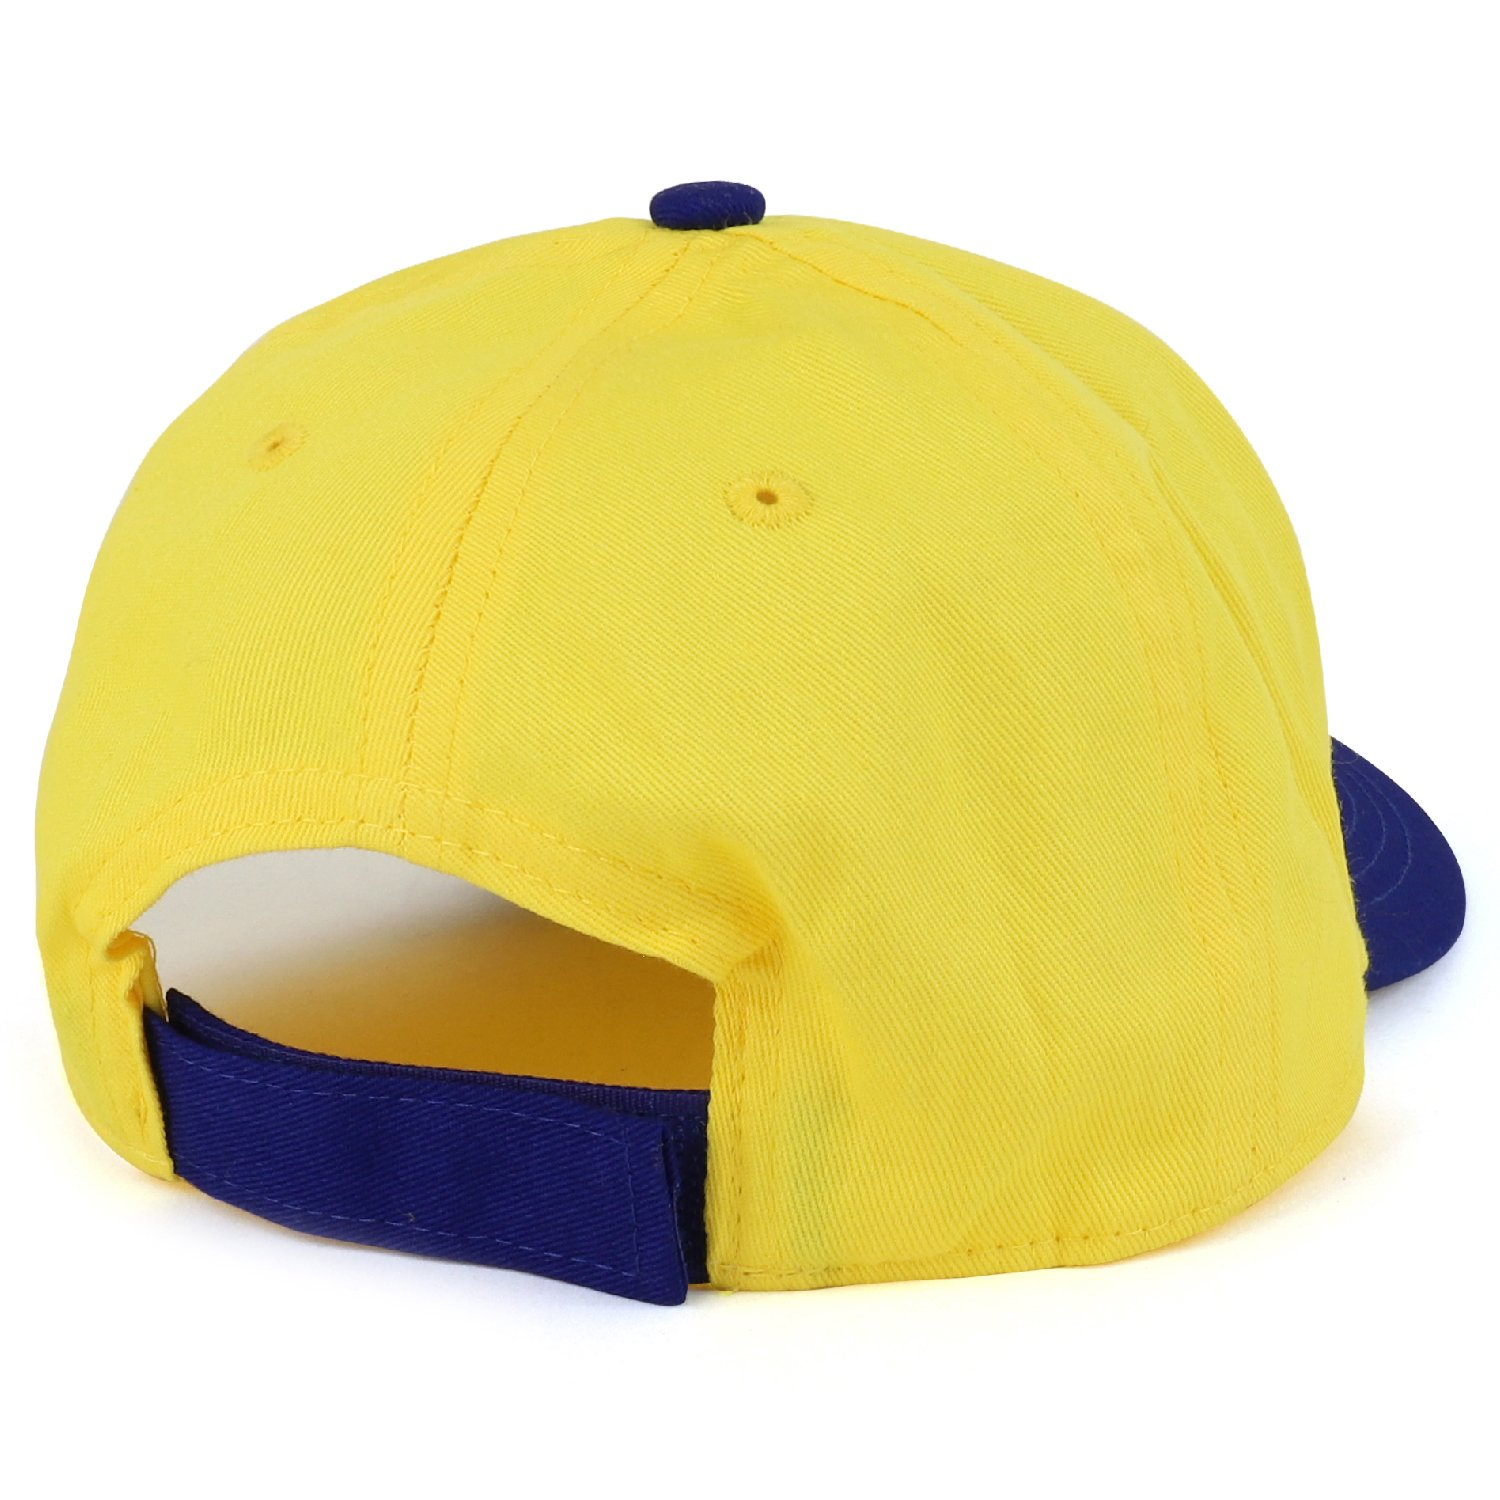 Trendy Apparel Shop Boys Kid's Despicable Me Minions Bob Blue Baseball Cap - Yellow by Trendy Apparel Shop (Image #3)